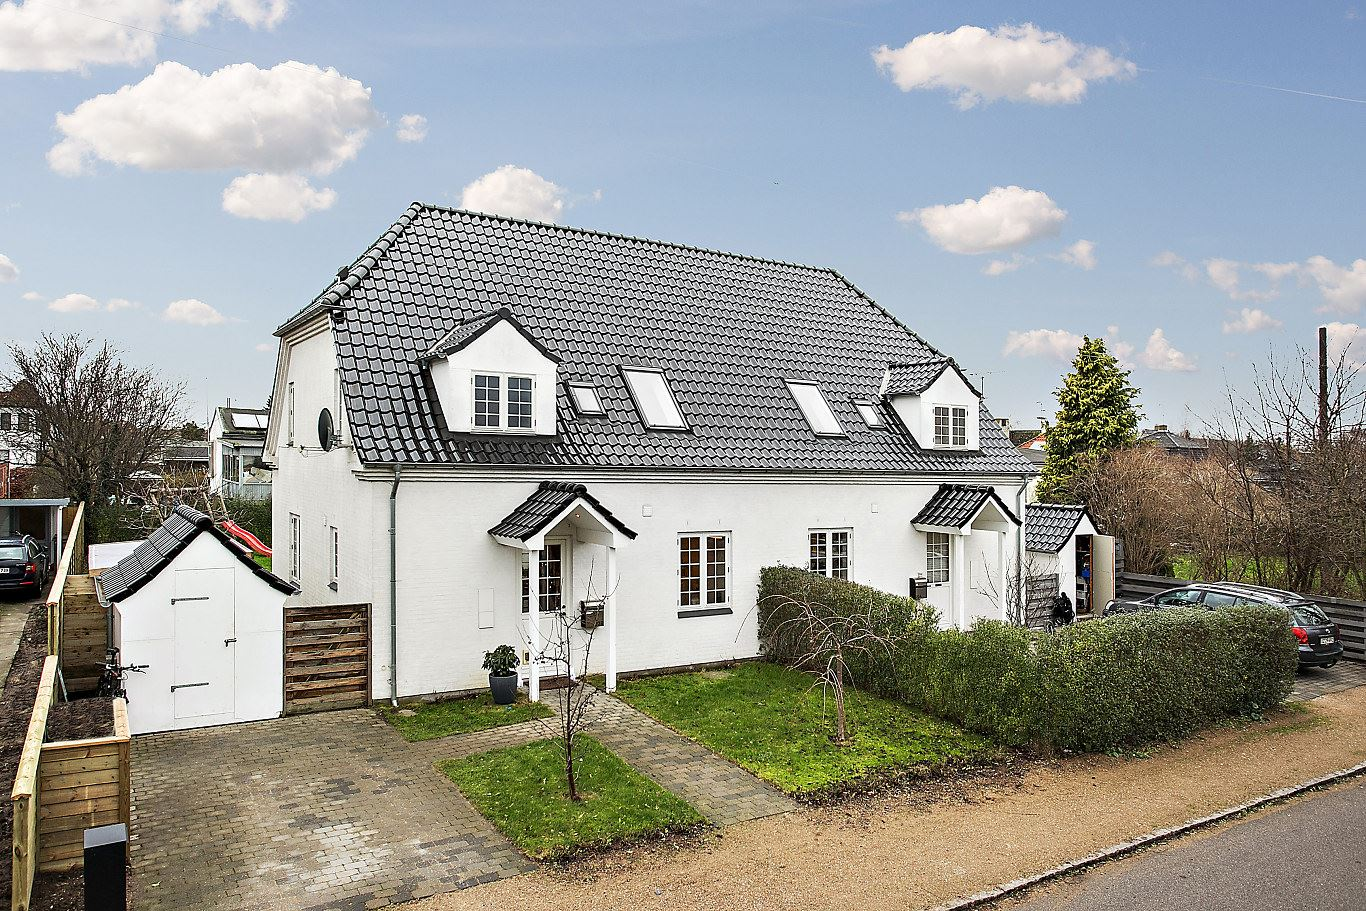 Lindehaven 20B, 2500 Valby